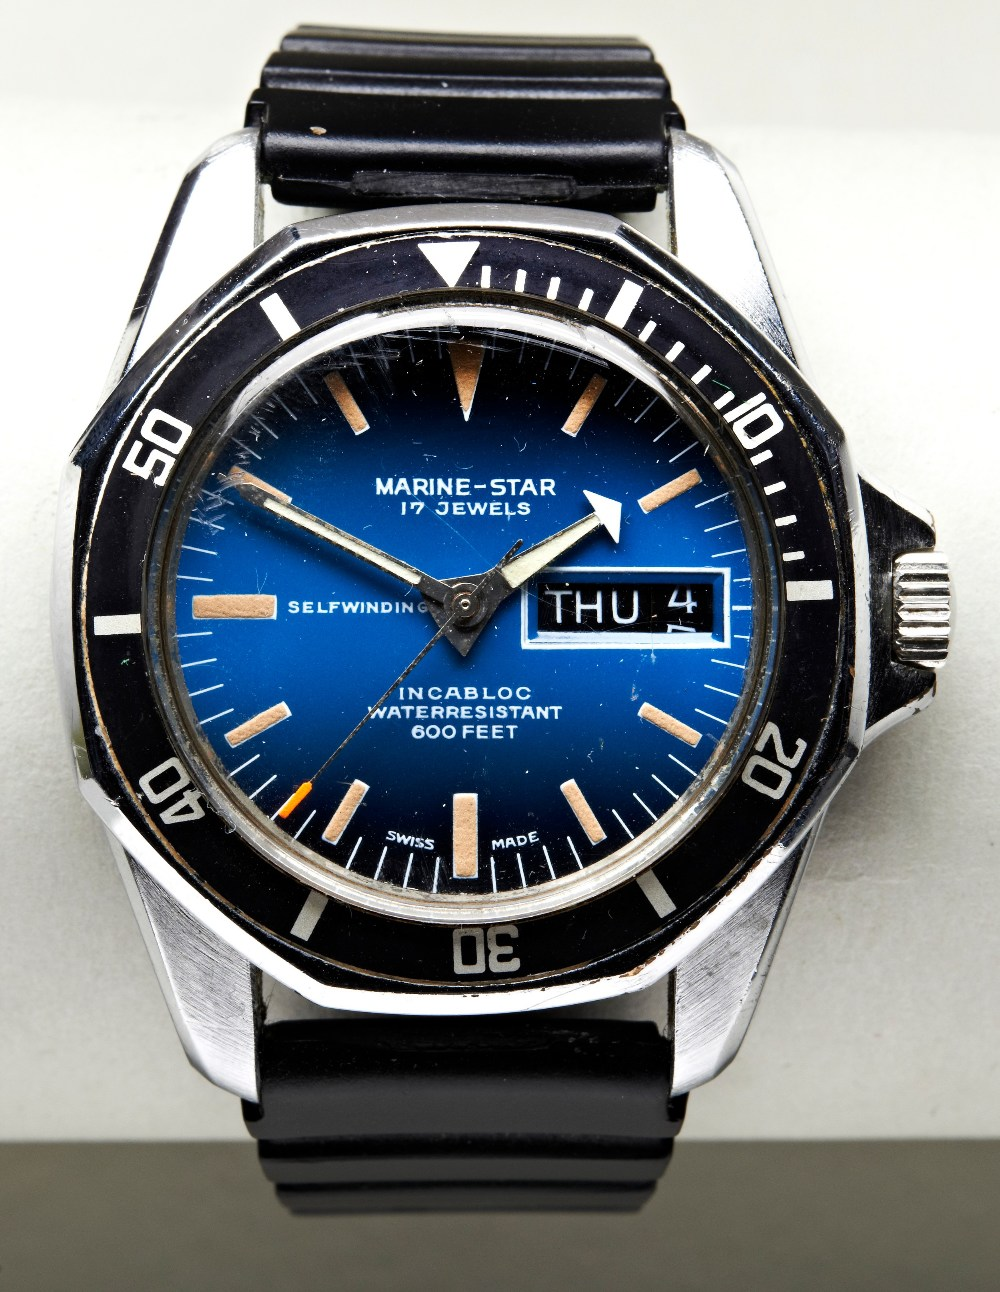 SICURA MARINE STAR AUTOMATIC STEEL 'DIVERS' WATCH, c1975, with rotating bezel, blue gradient dial